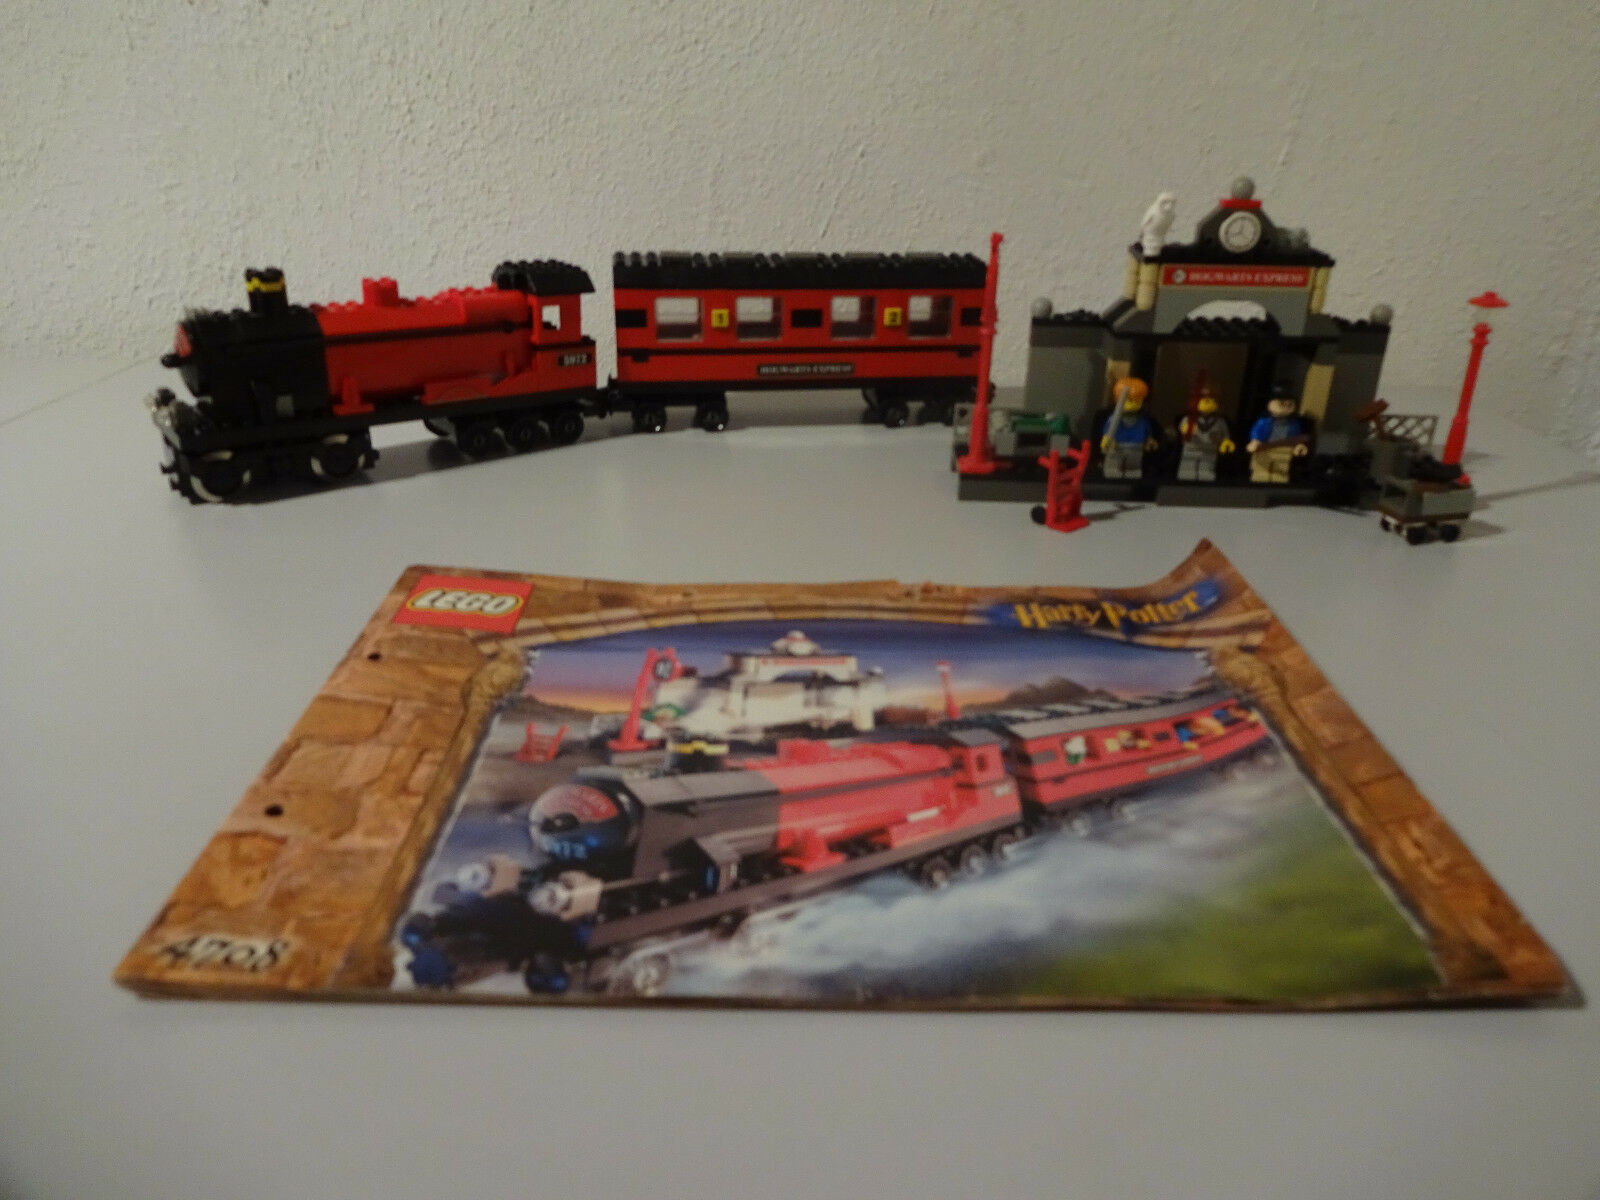 (Tb) Lego 4708 Harry Potter Hogwarts Express with Ba 100% complete 9VOLT Motor